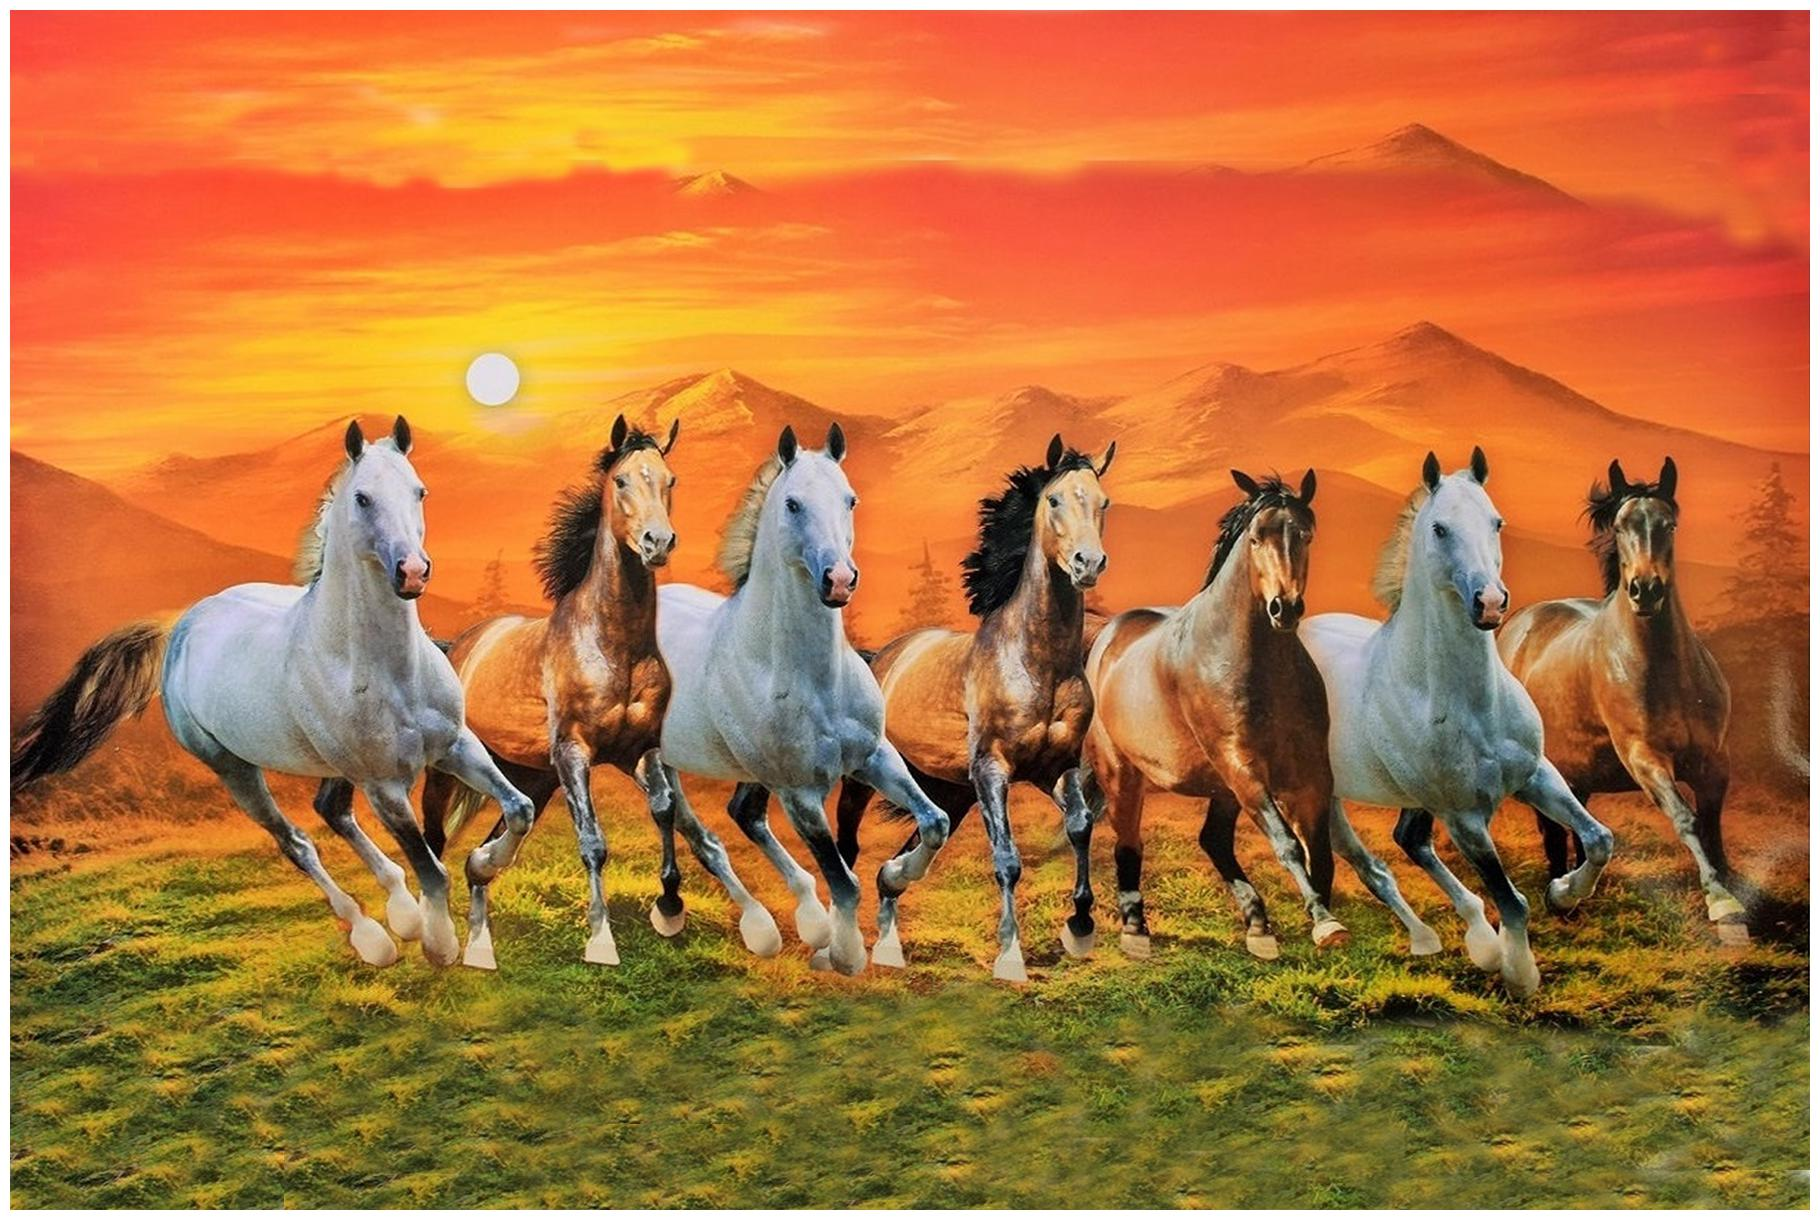 Running Horses With Frame 1820x1220 Wallpaper Teahub Io